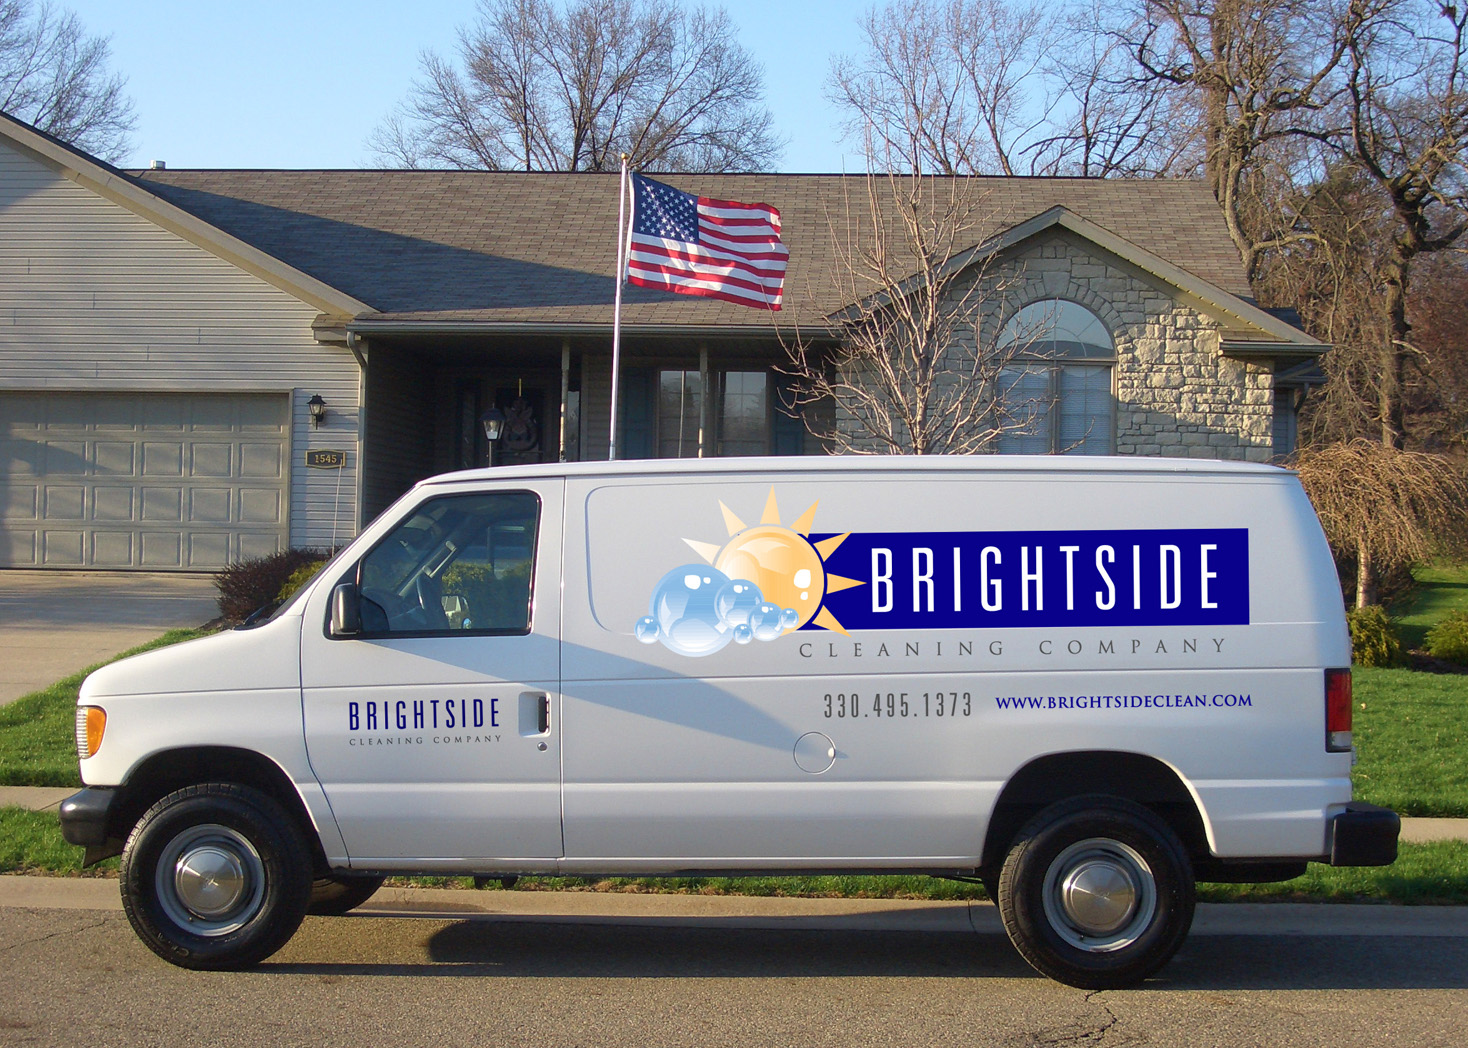 Brightside Cleaning Company - Vehicle Wrap - Lehman Design